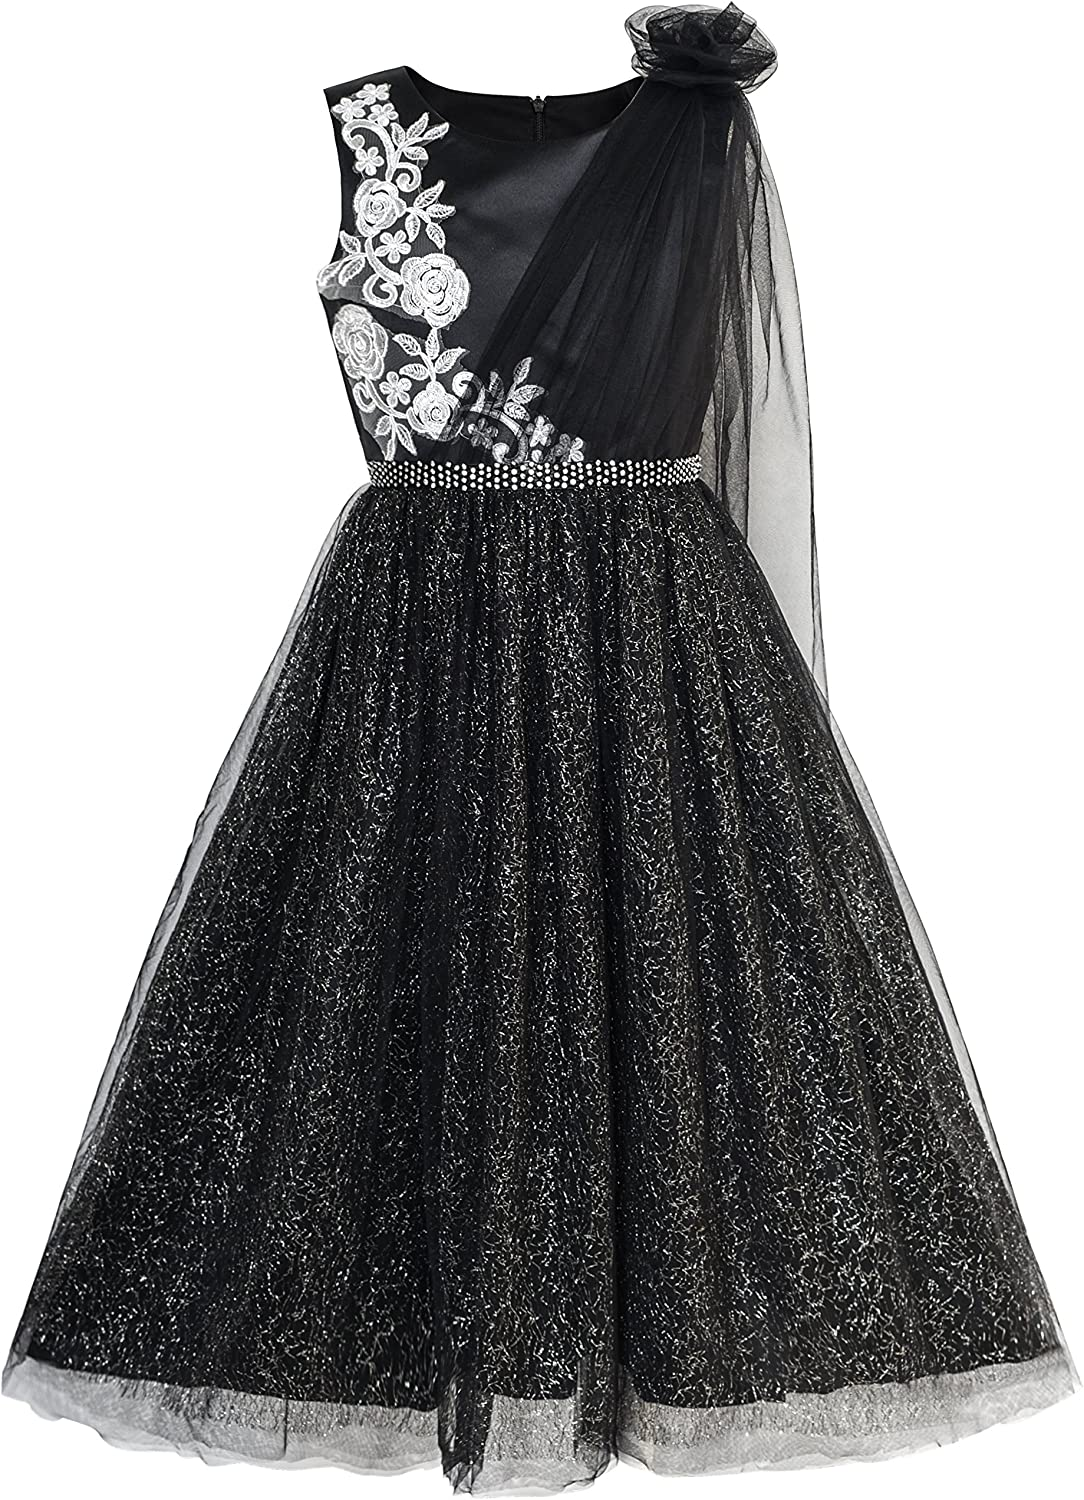 Sunny Fashion Girls Dress Black Sparkling Tulle Lace Party Prom Gown Size 6-12